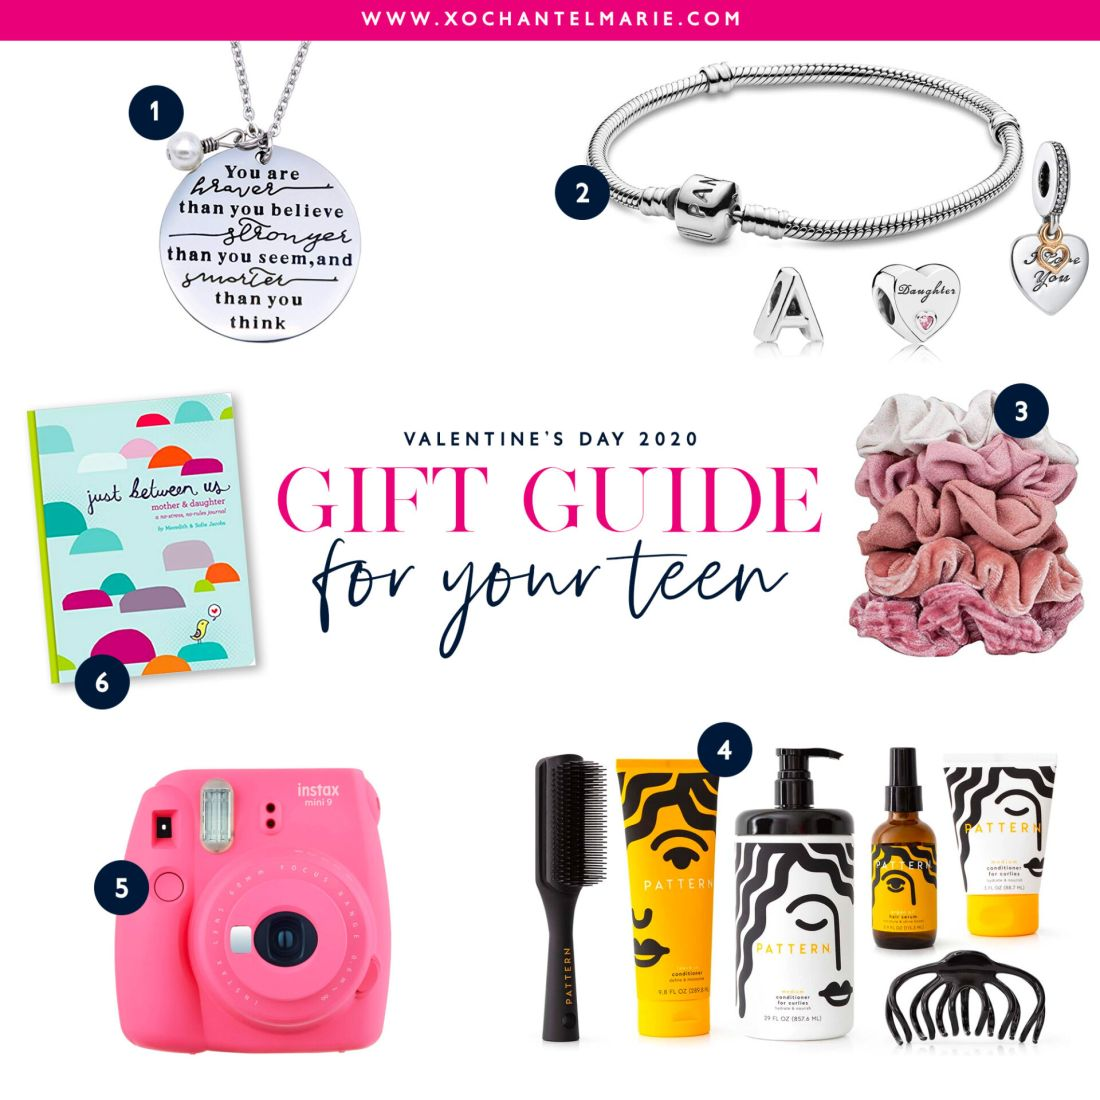 2020 Valentine's Day Gift Guide for teens